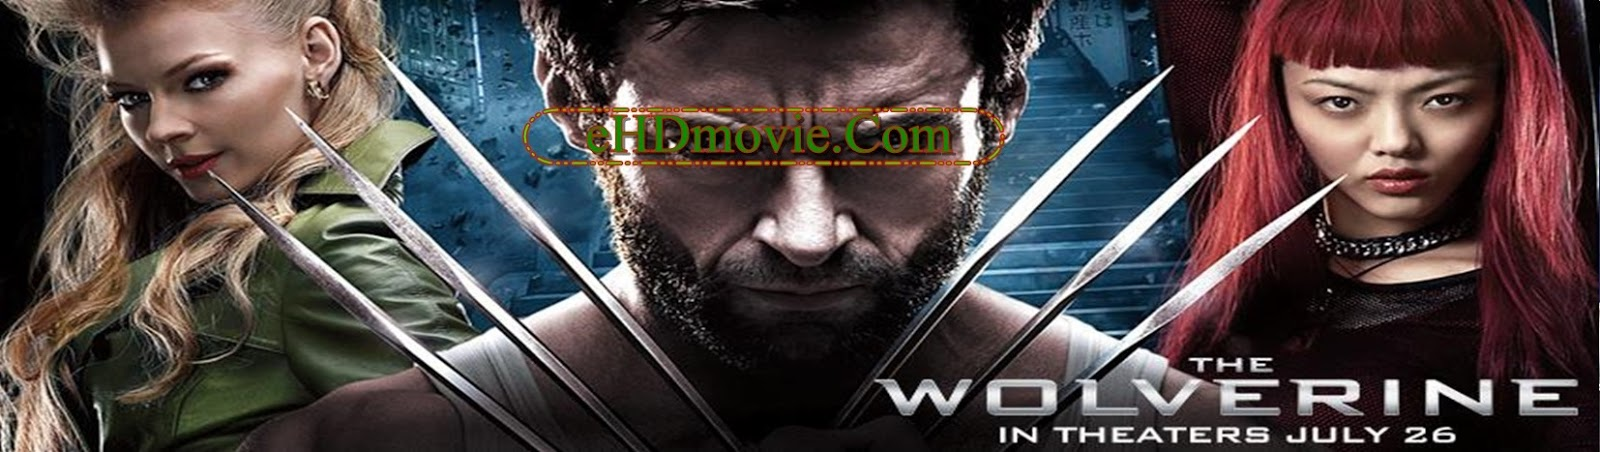 The Wolverine EXTENDED 2013 Full Movie Dual Audio [Hindi – English] 1080p - 720p - 480p ORG BRRip 400MB - 1.7 - 2.8GB ESubs Free Download